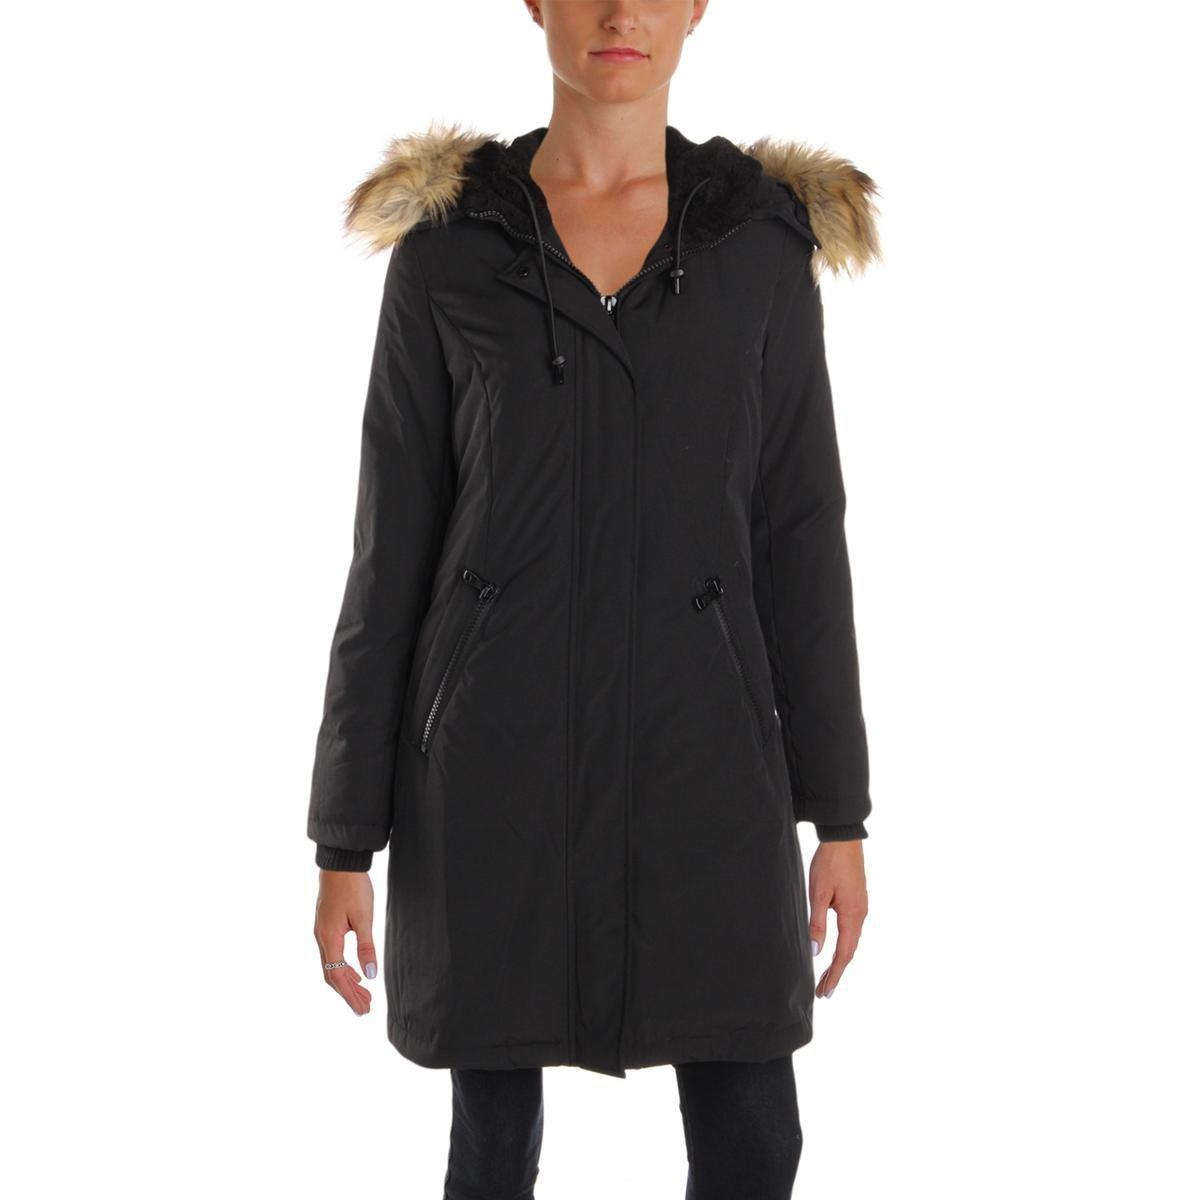 0e40d44b5 Lyst - Vince Camuto Womens Winter Down Parka Coat in Black